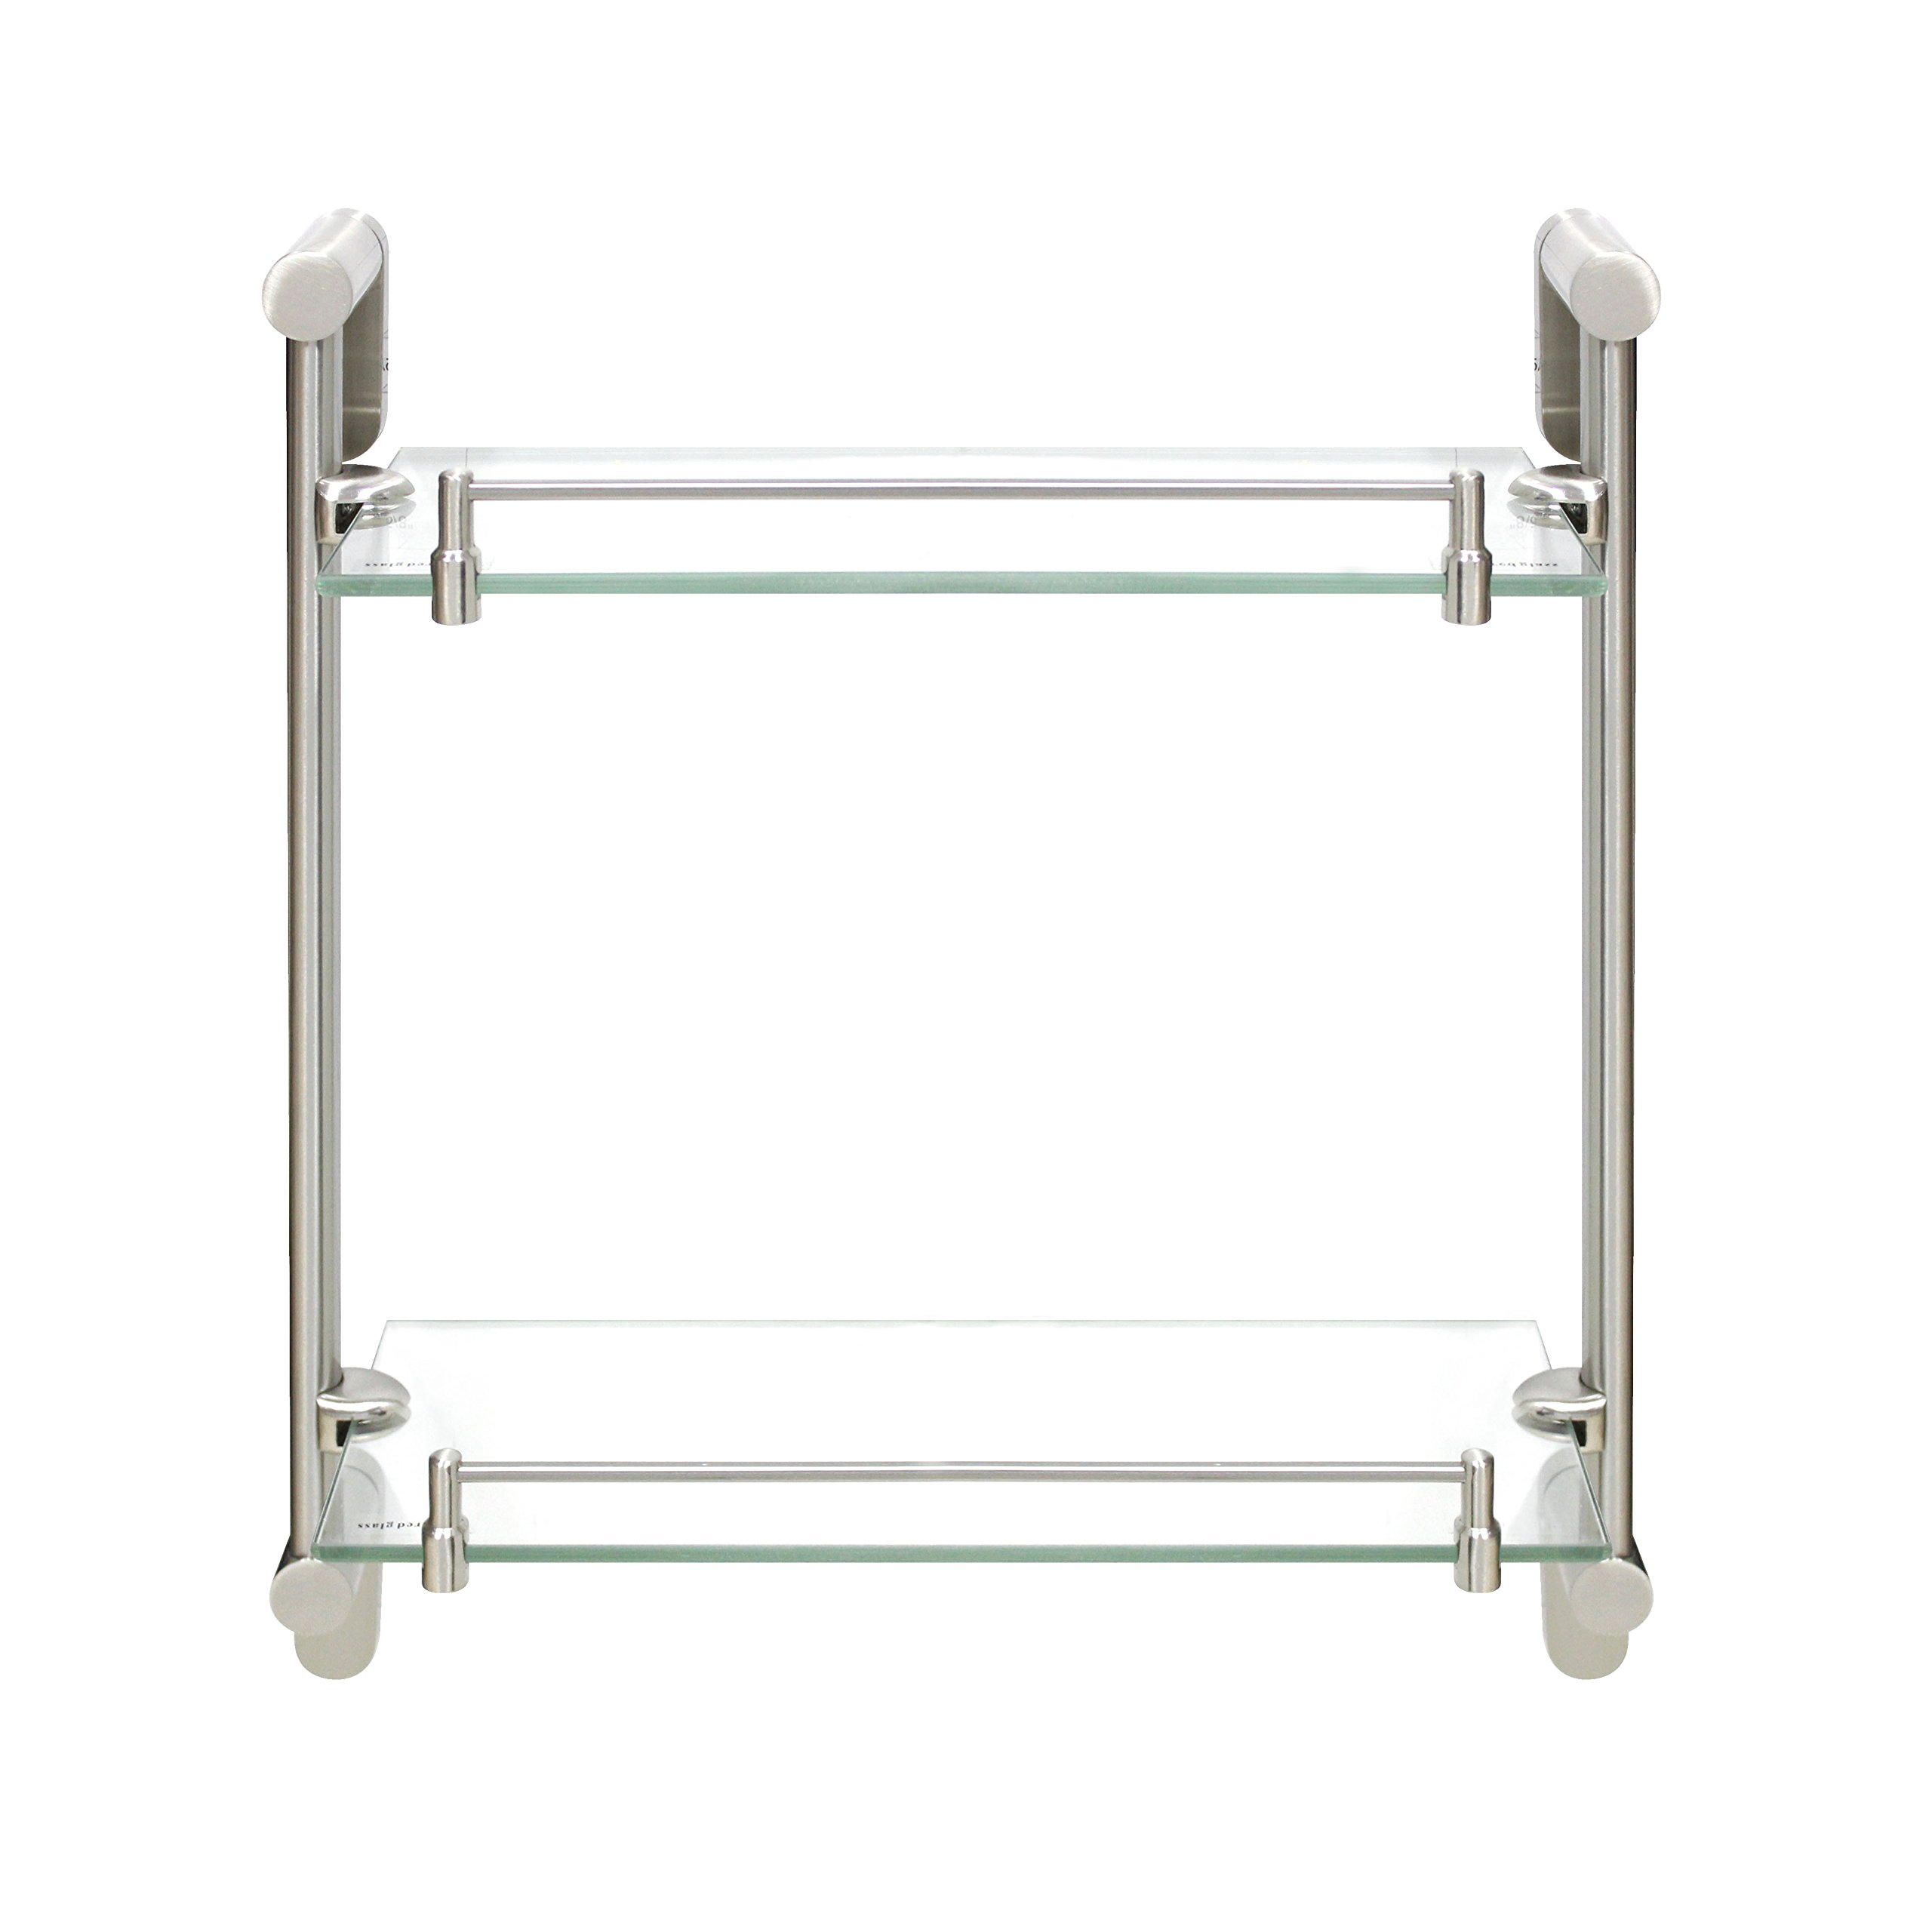 MODONA Double Glass Shelf with Rail – Satin Nickel – Oval Series - 5 Year Warrantee by MODONA